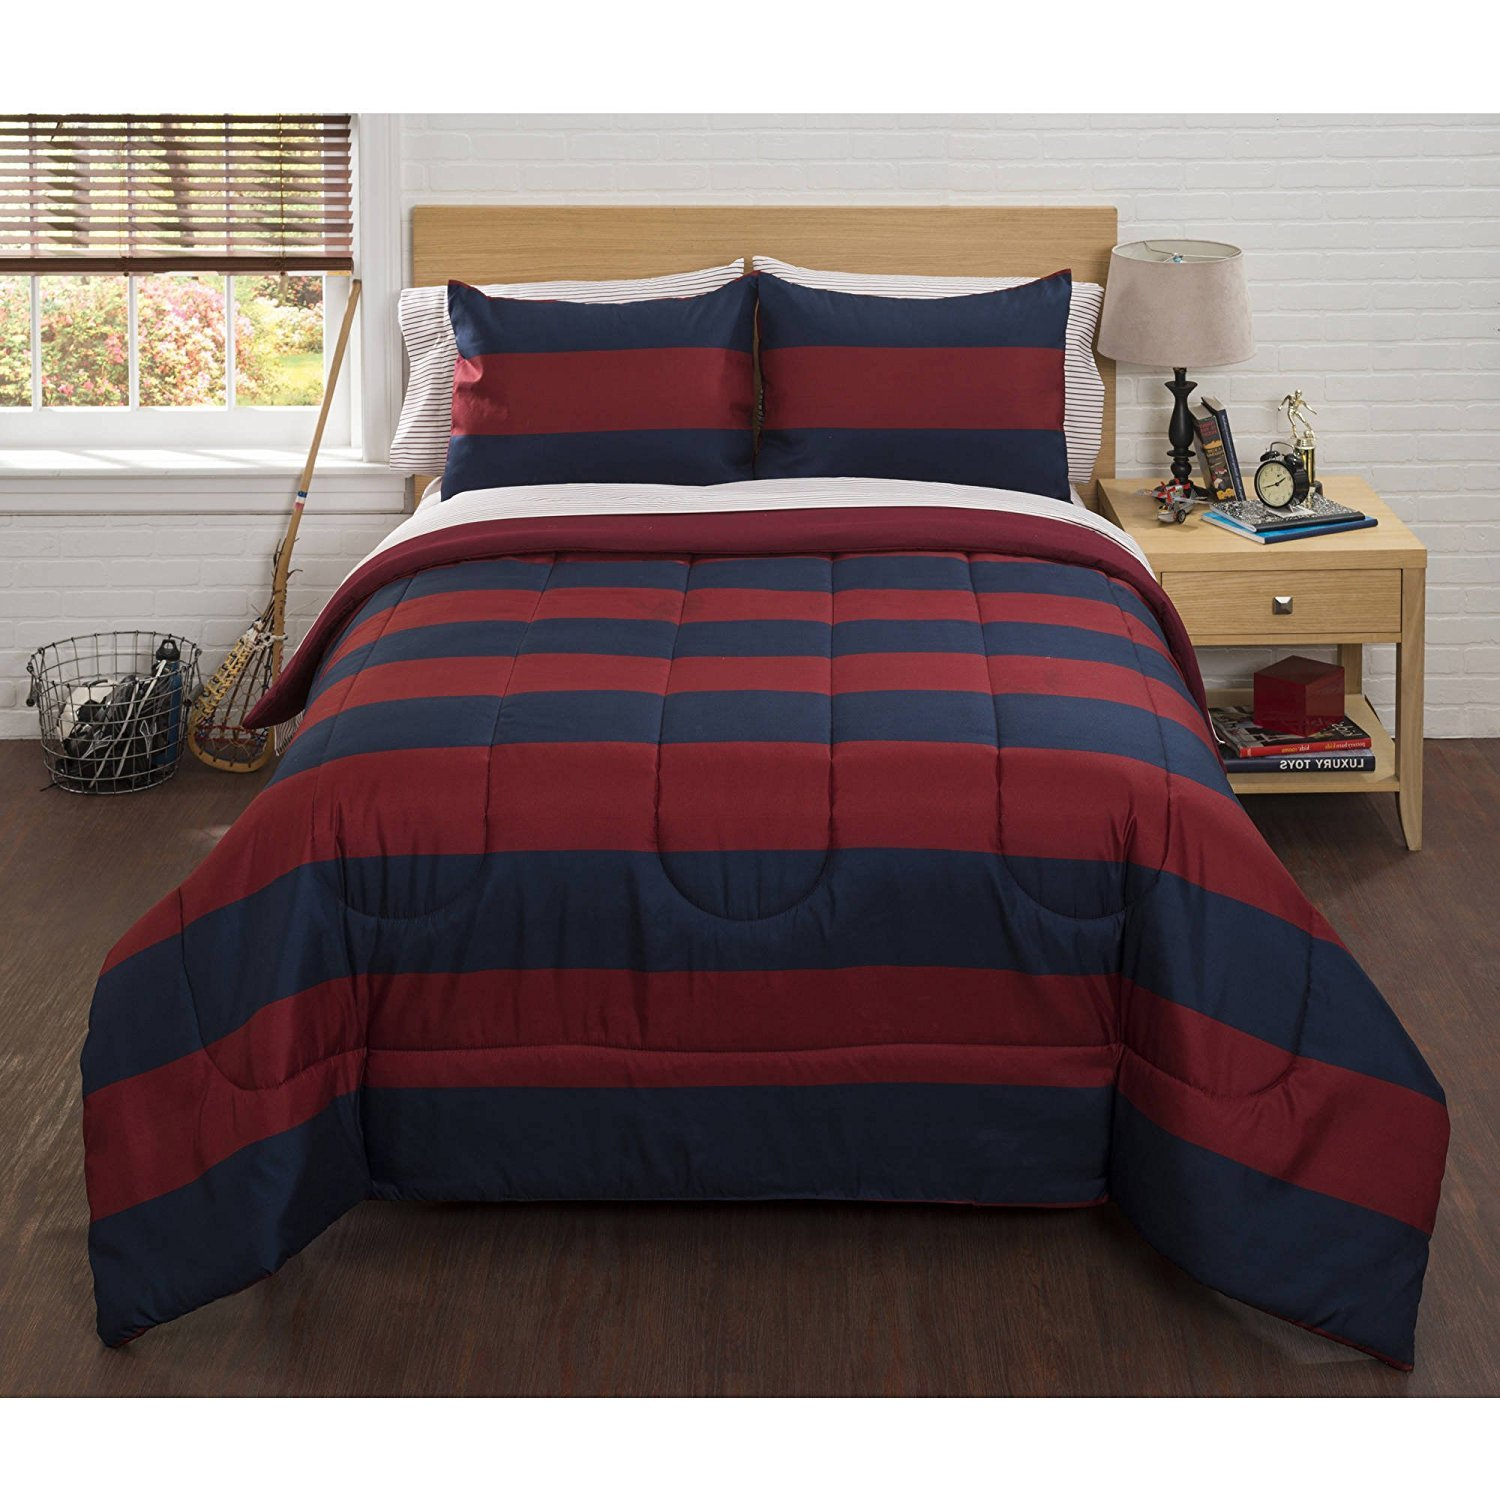 DP 7pc Red Navy Boys Rugby Stripes Pattern Queen Comforter Set Sheets, Sports Striped Nautical Theme, Horizontal Cabana Lines Design, Vibrant Navy Blue Kids, Polyester